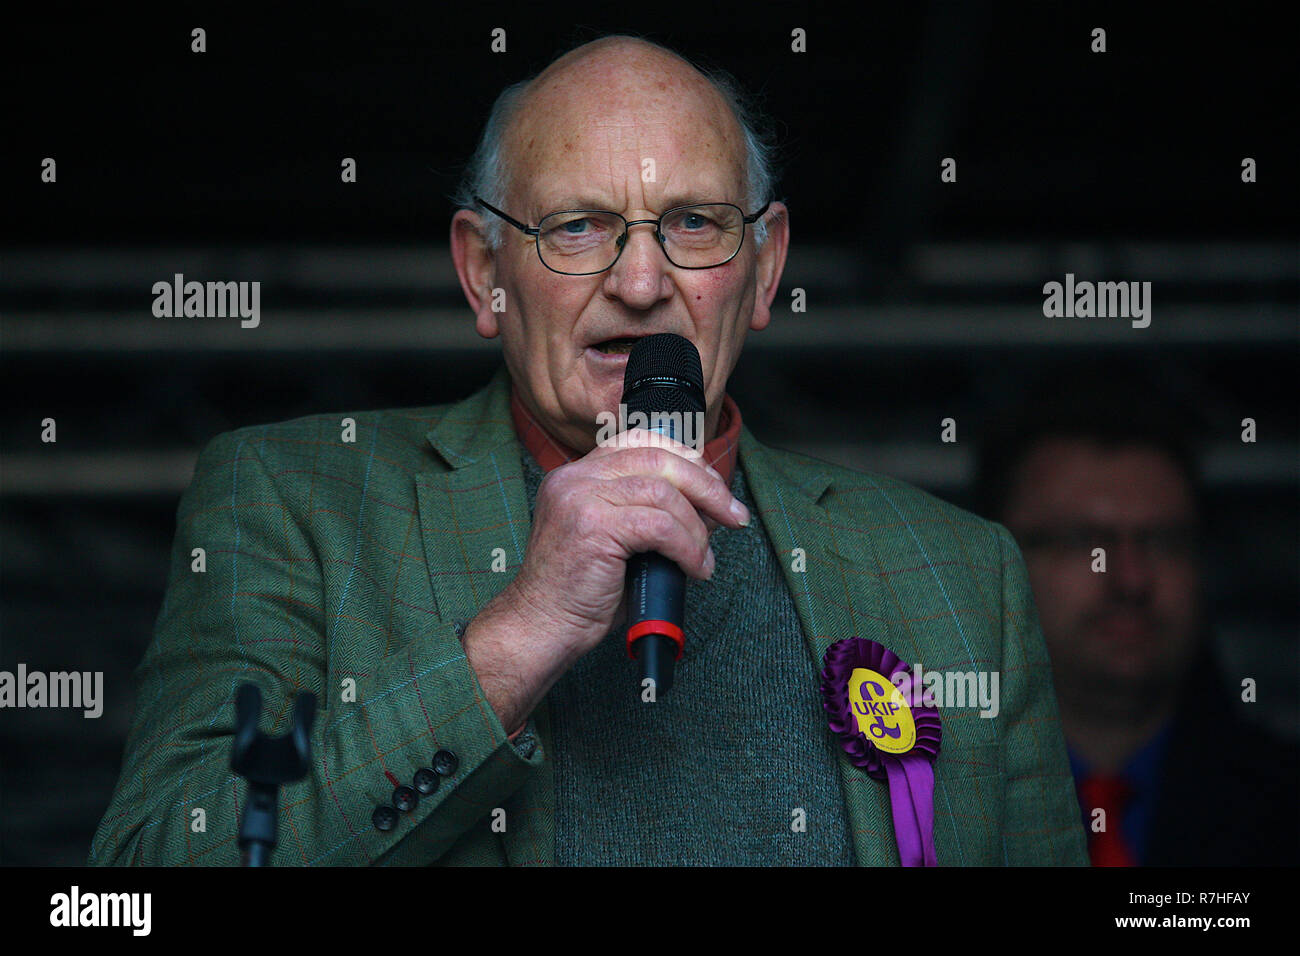 Stuart Agnew UKIP MEP and UKIP Agriculture and Food Spokesperson in London, UK. 09th Dec, 2018. Presented a speech along with Gerard Batten and Tommy Robinson who joined together on the Brexit Betrayed Rally organised by UKIP in London Credit: Rupert Rivett/Alamy Live News - Stock Image